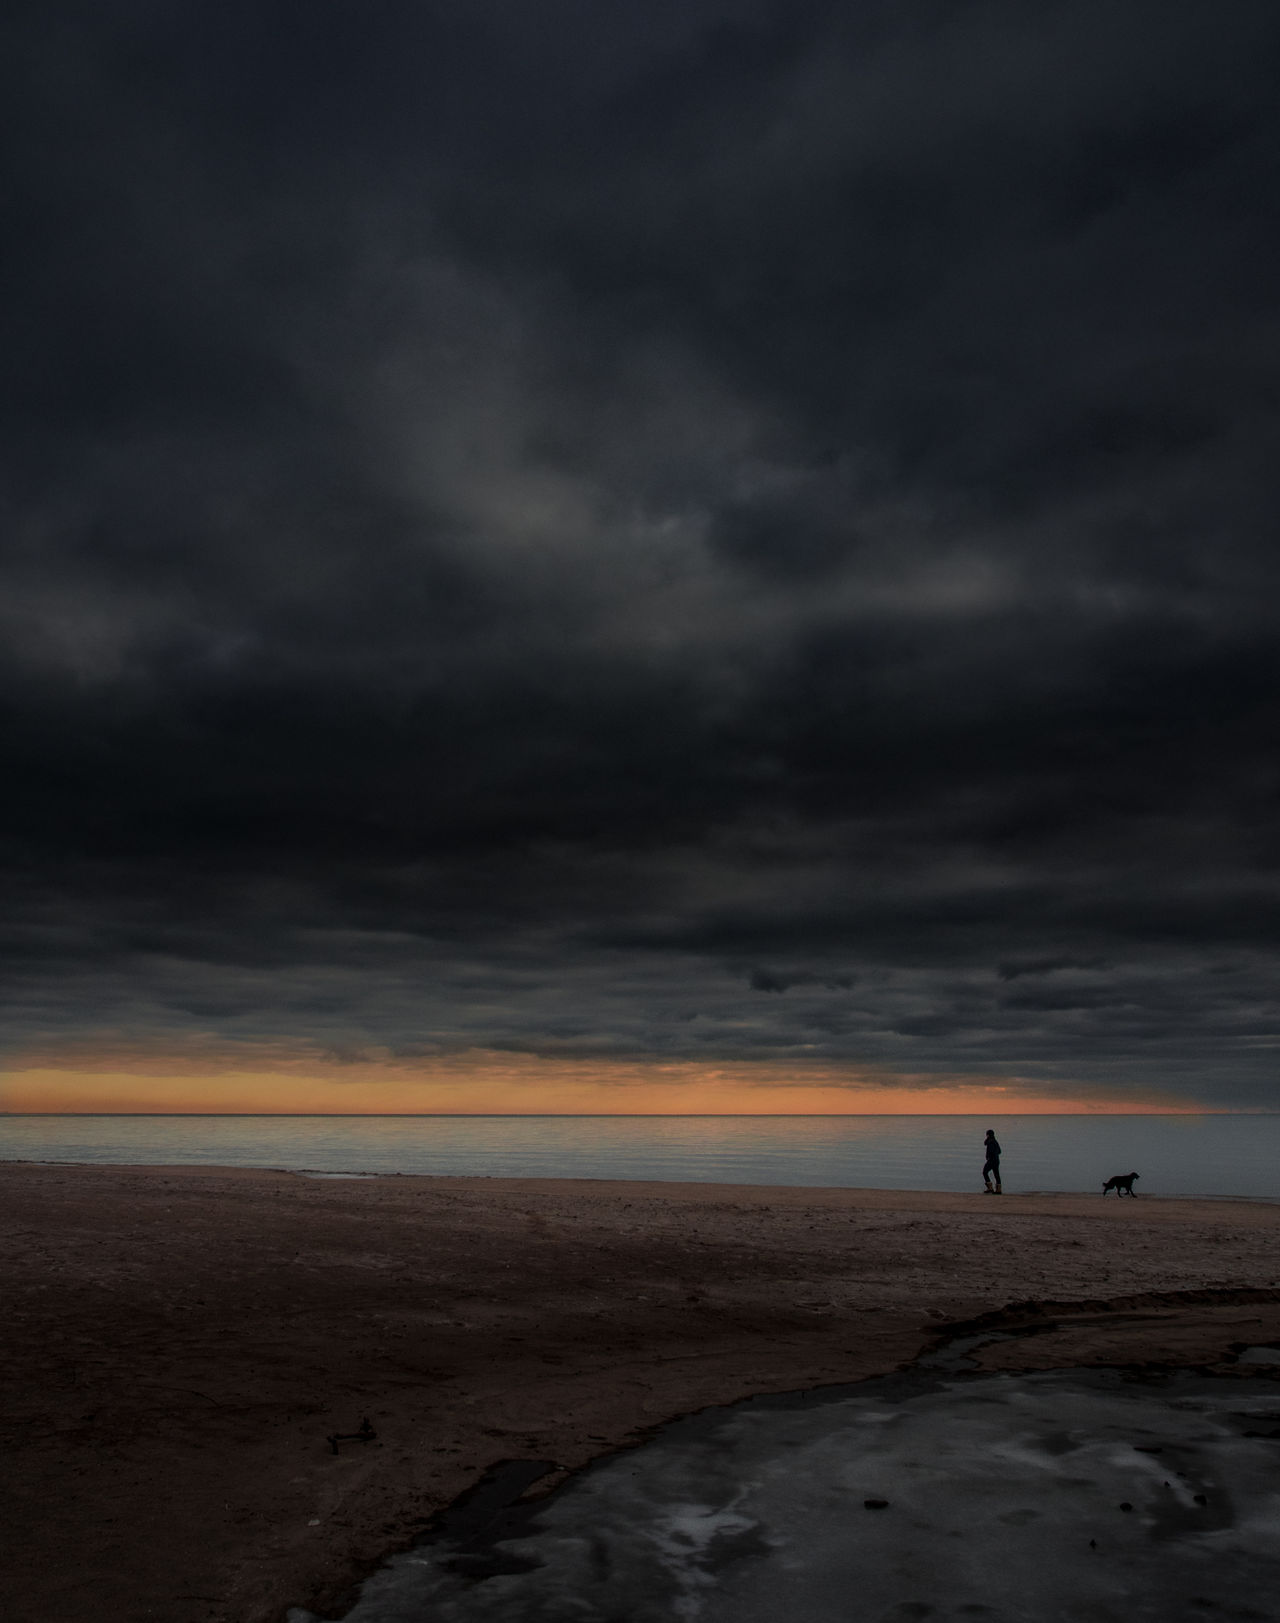 Adult Adults Only Beach Beauty In Nature Cloud - Sky Day Dramatic Sky Full Length Horizon Over Water Nature One Man Only One Person Only Men Outdoors People Sand Scenics Sea Silhouette Sky Standing Storm Cloud Sunset Water